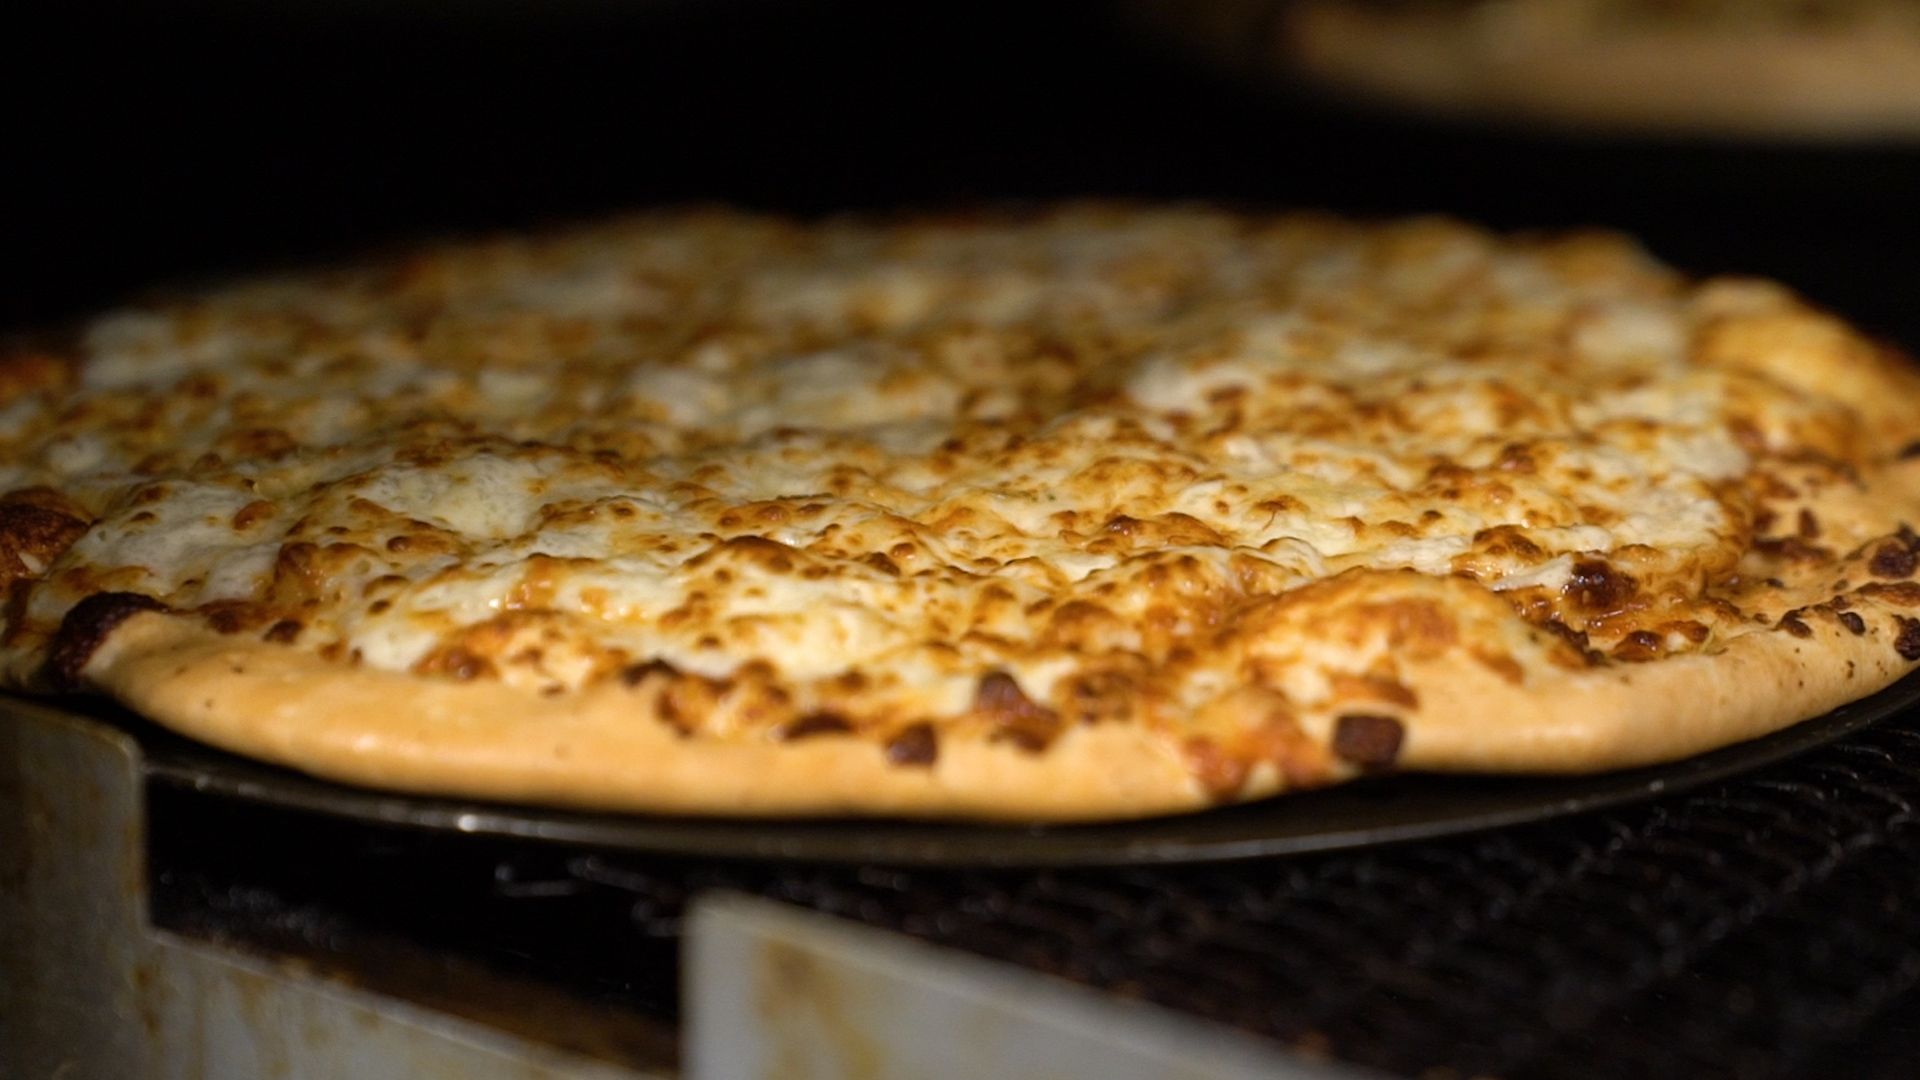 Can you guess what's on top of a Minsky's Pizza?